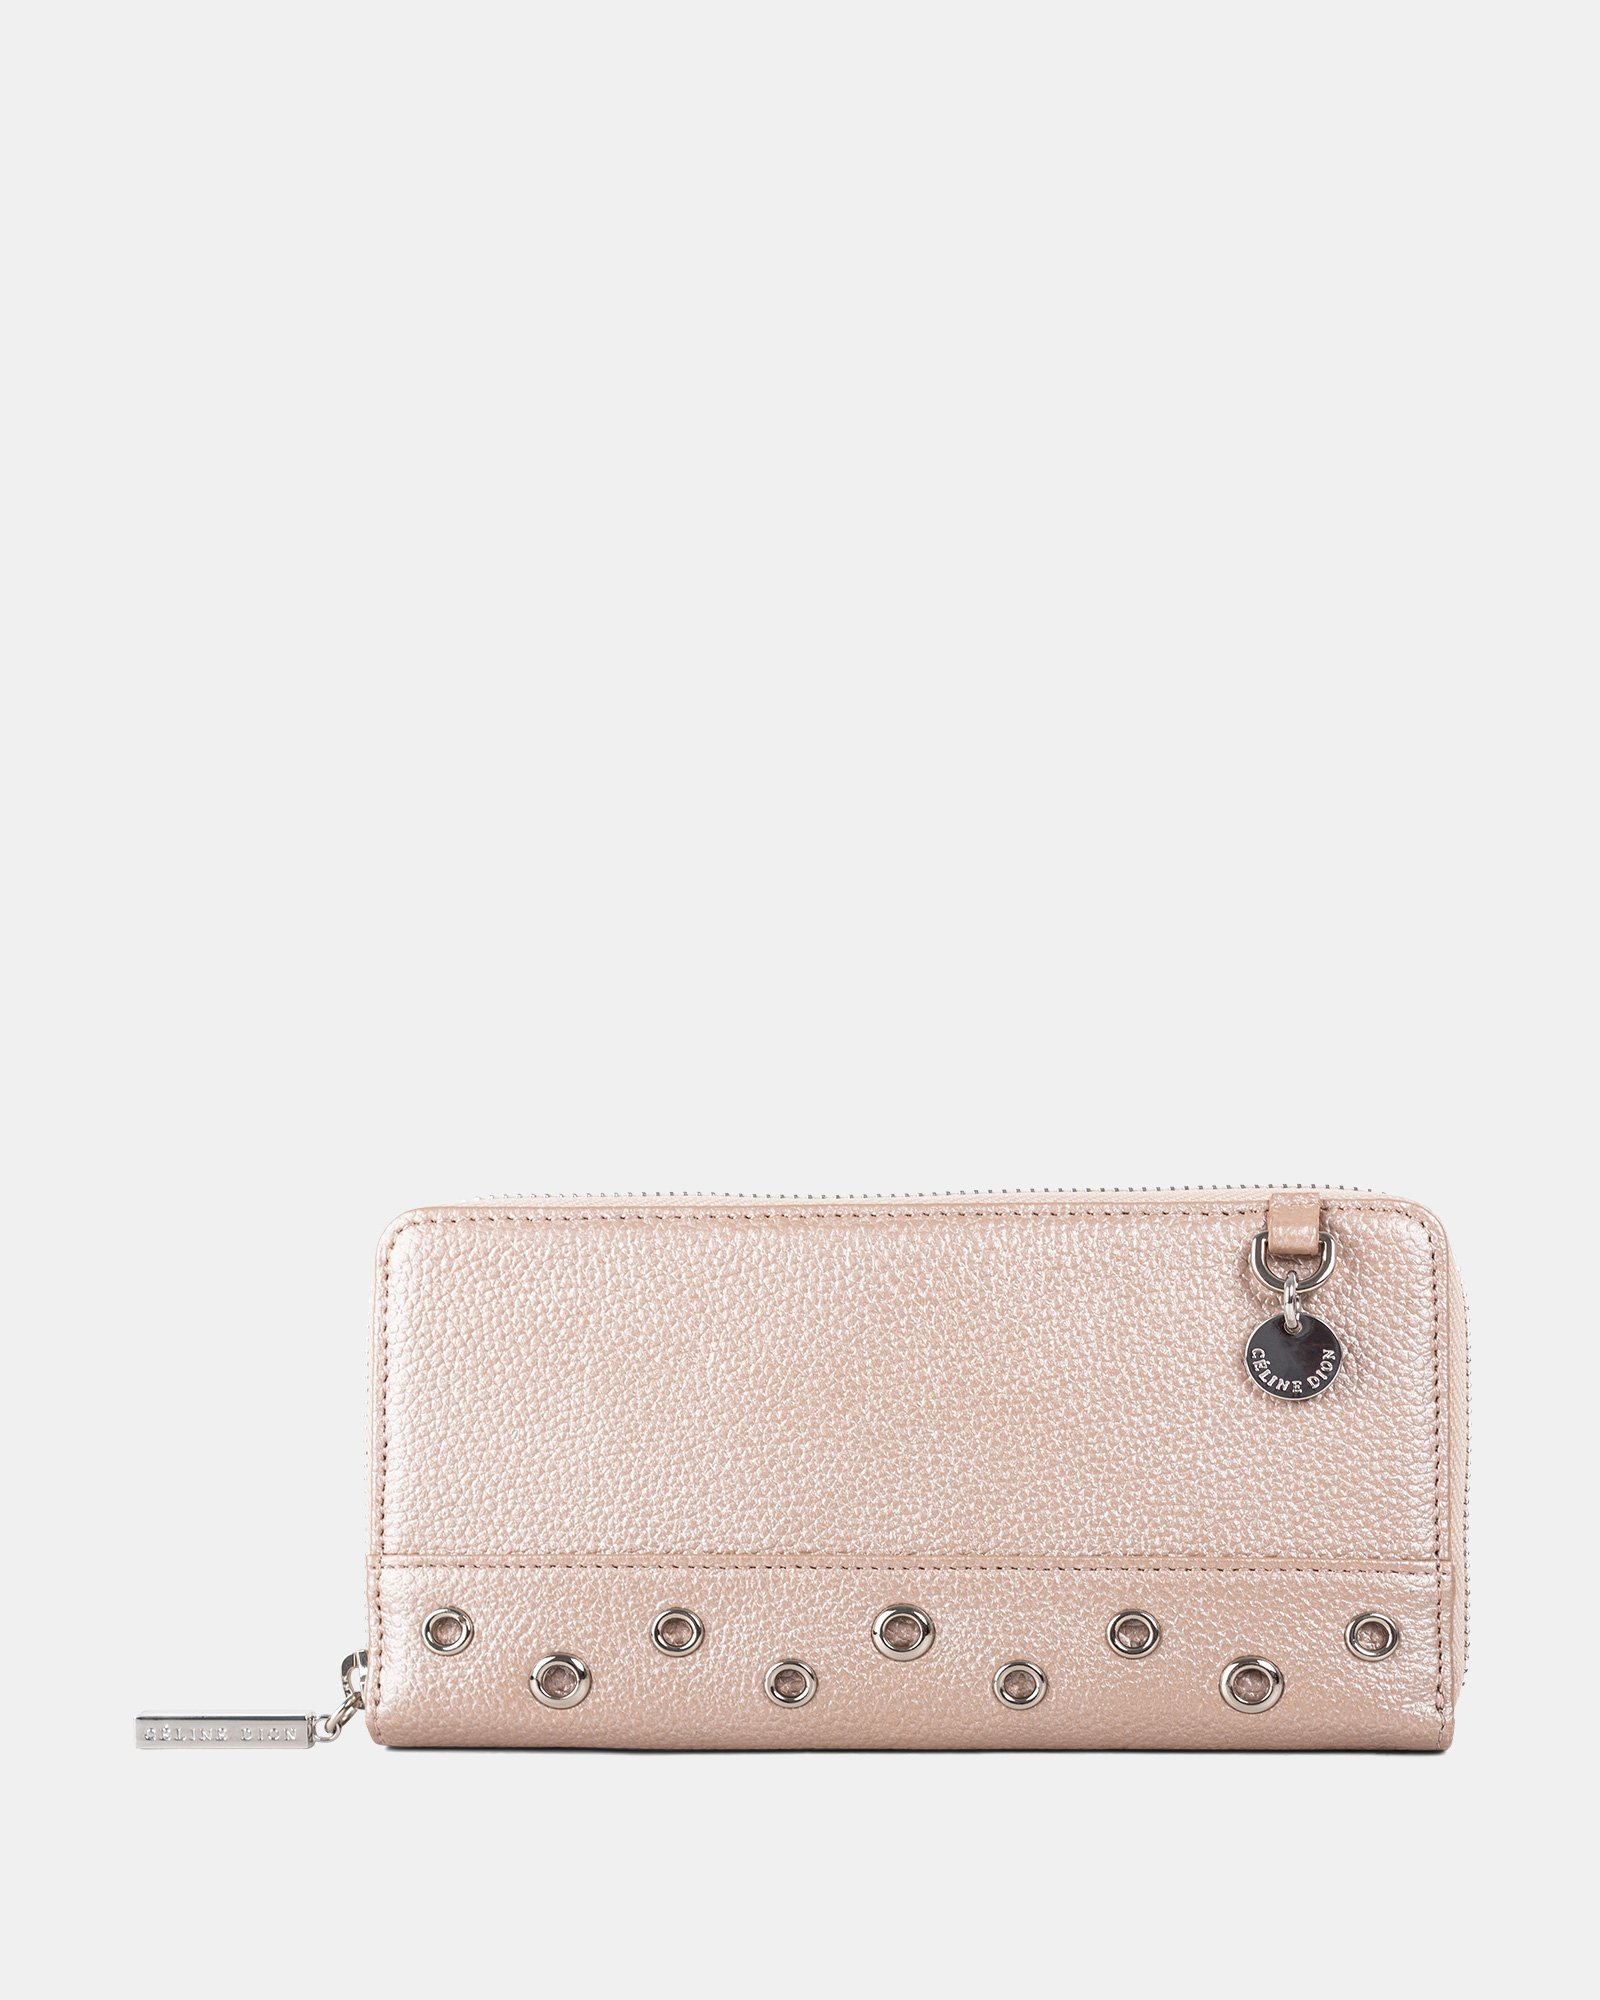 FALSETTO - LEATHER WALLET with Removable chain strap - rosegold - Céline Dion - Zoom